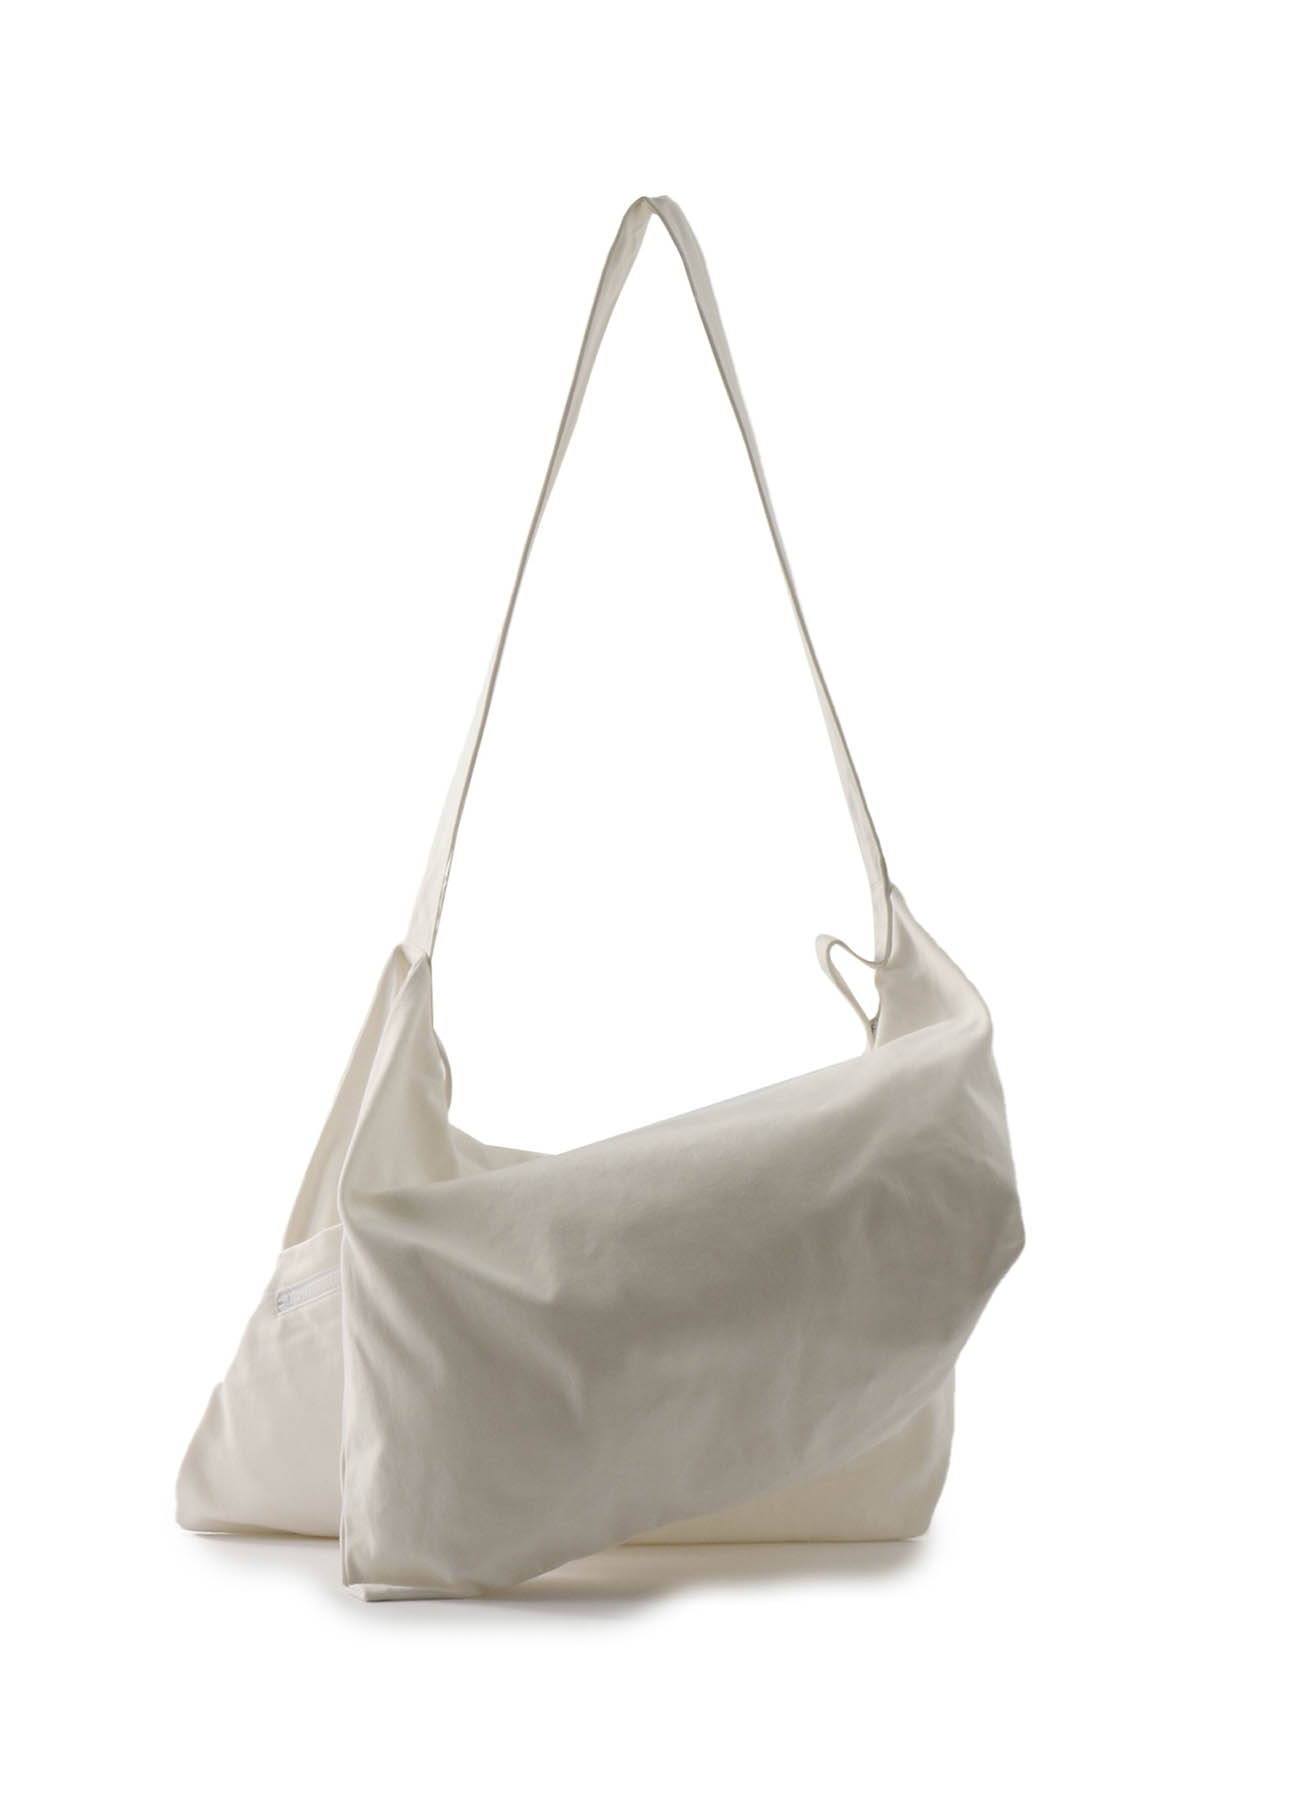 NO.11 CANVAS MESSANGER BAG